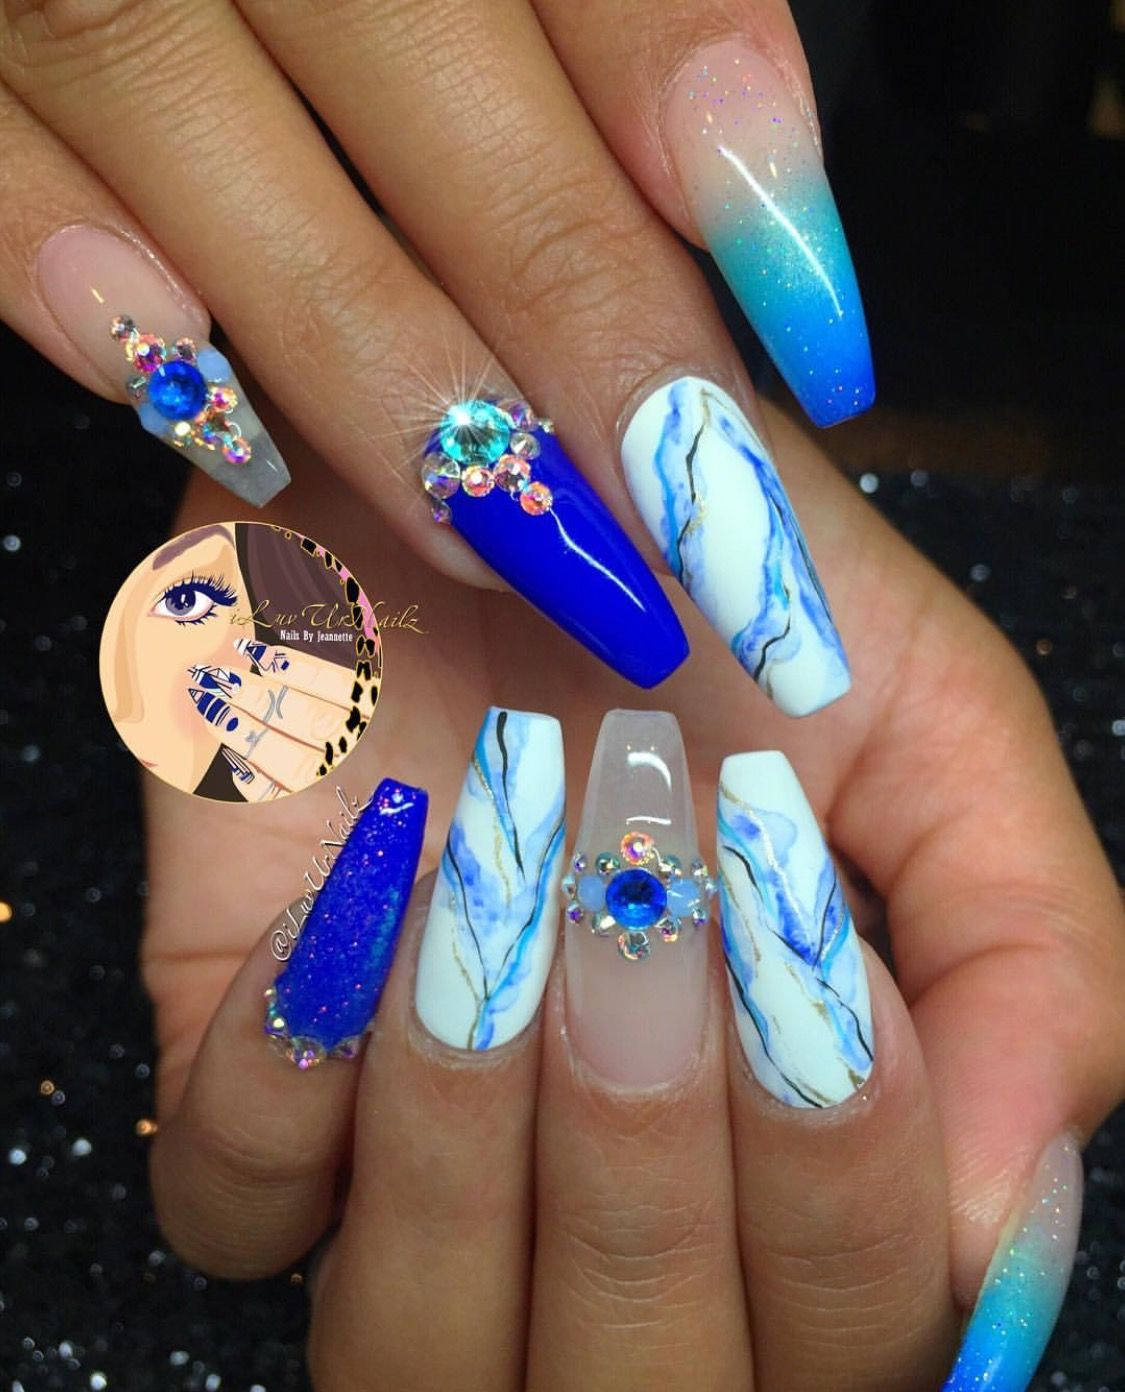 Marble Nail Art Stiletto: For More Pins & Boards Follow @ ⓅⒾⓃ ⒶⒹⒹⒾⒸⓉ